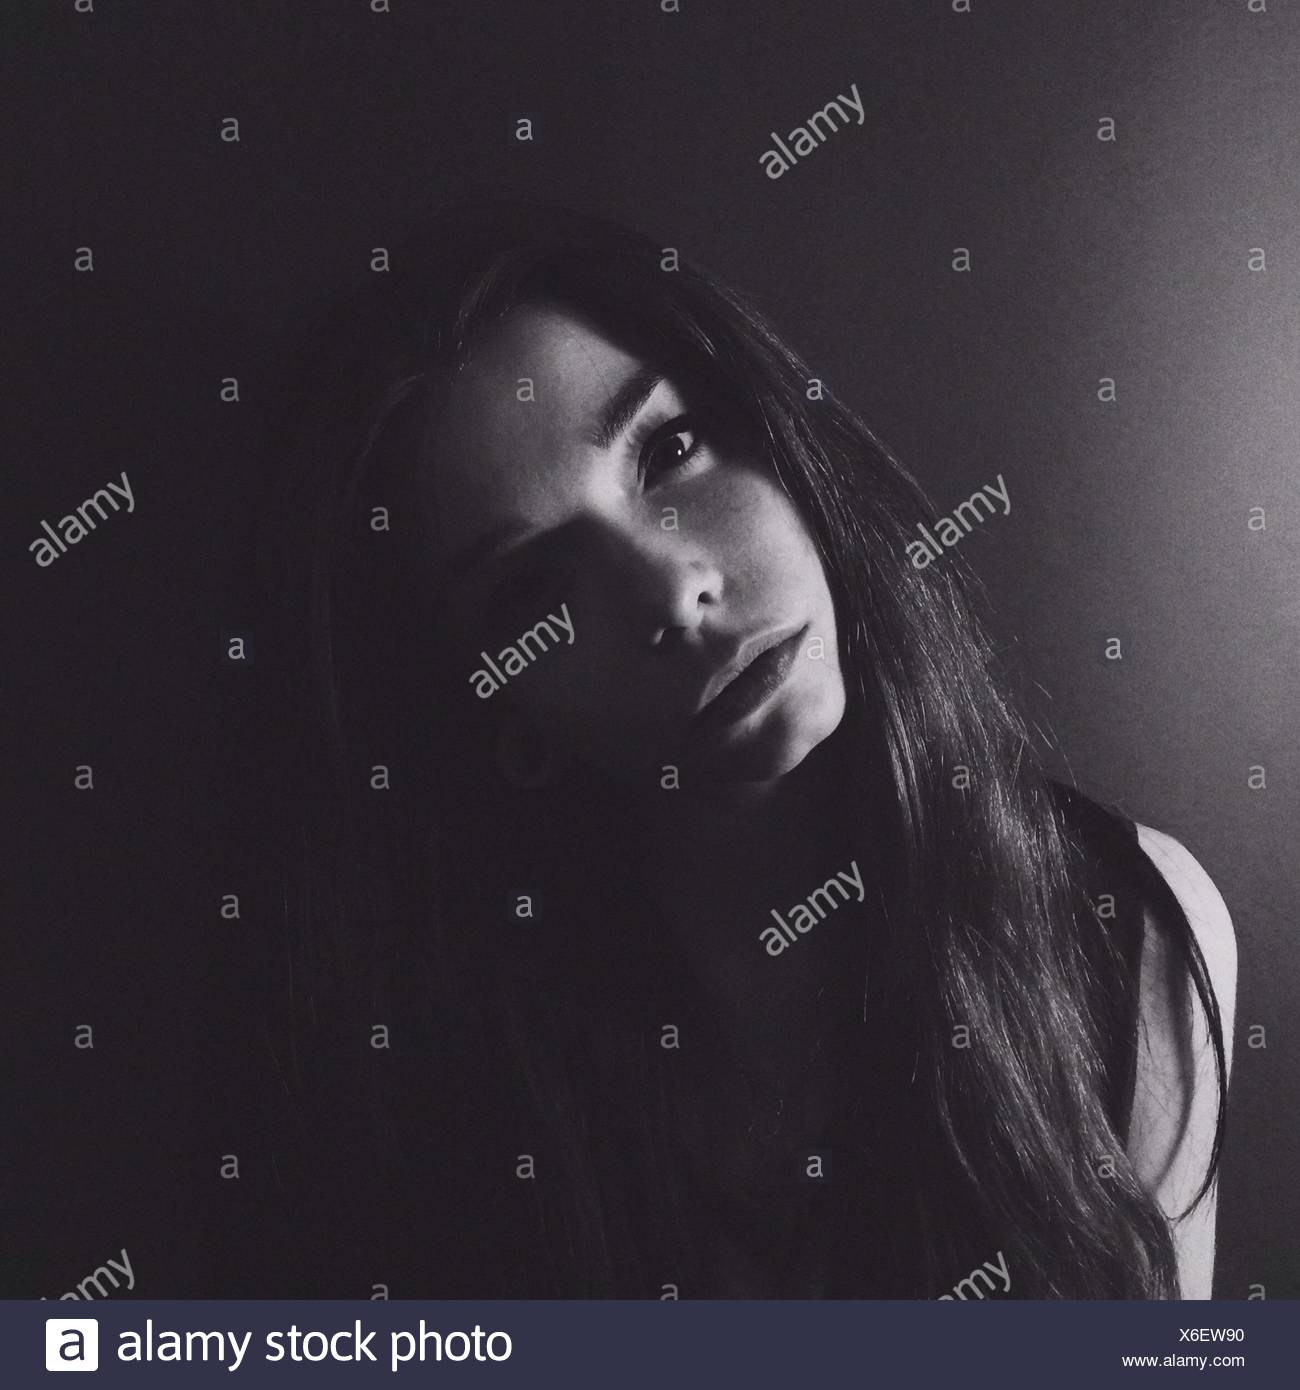 Close-Up Portrait Of A Serious Woman Over Plain Background - Stock Image